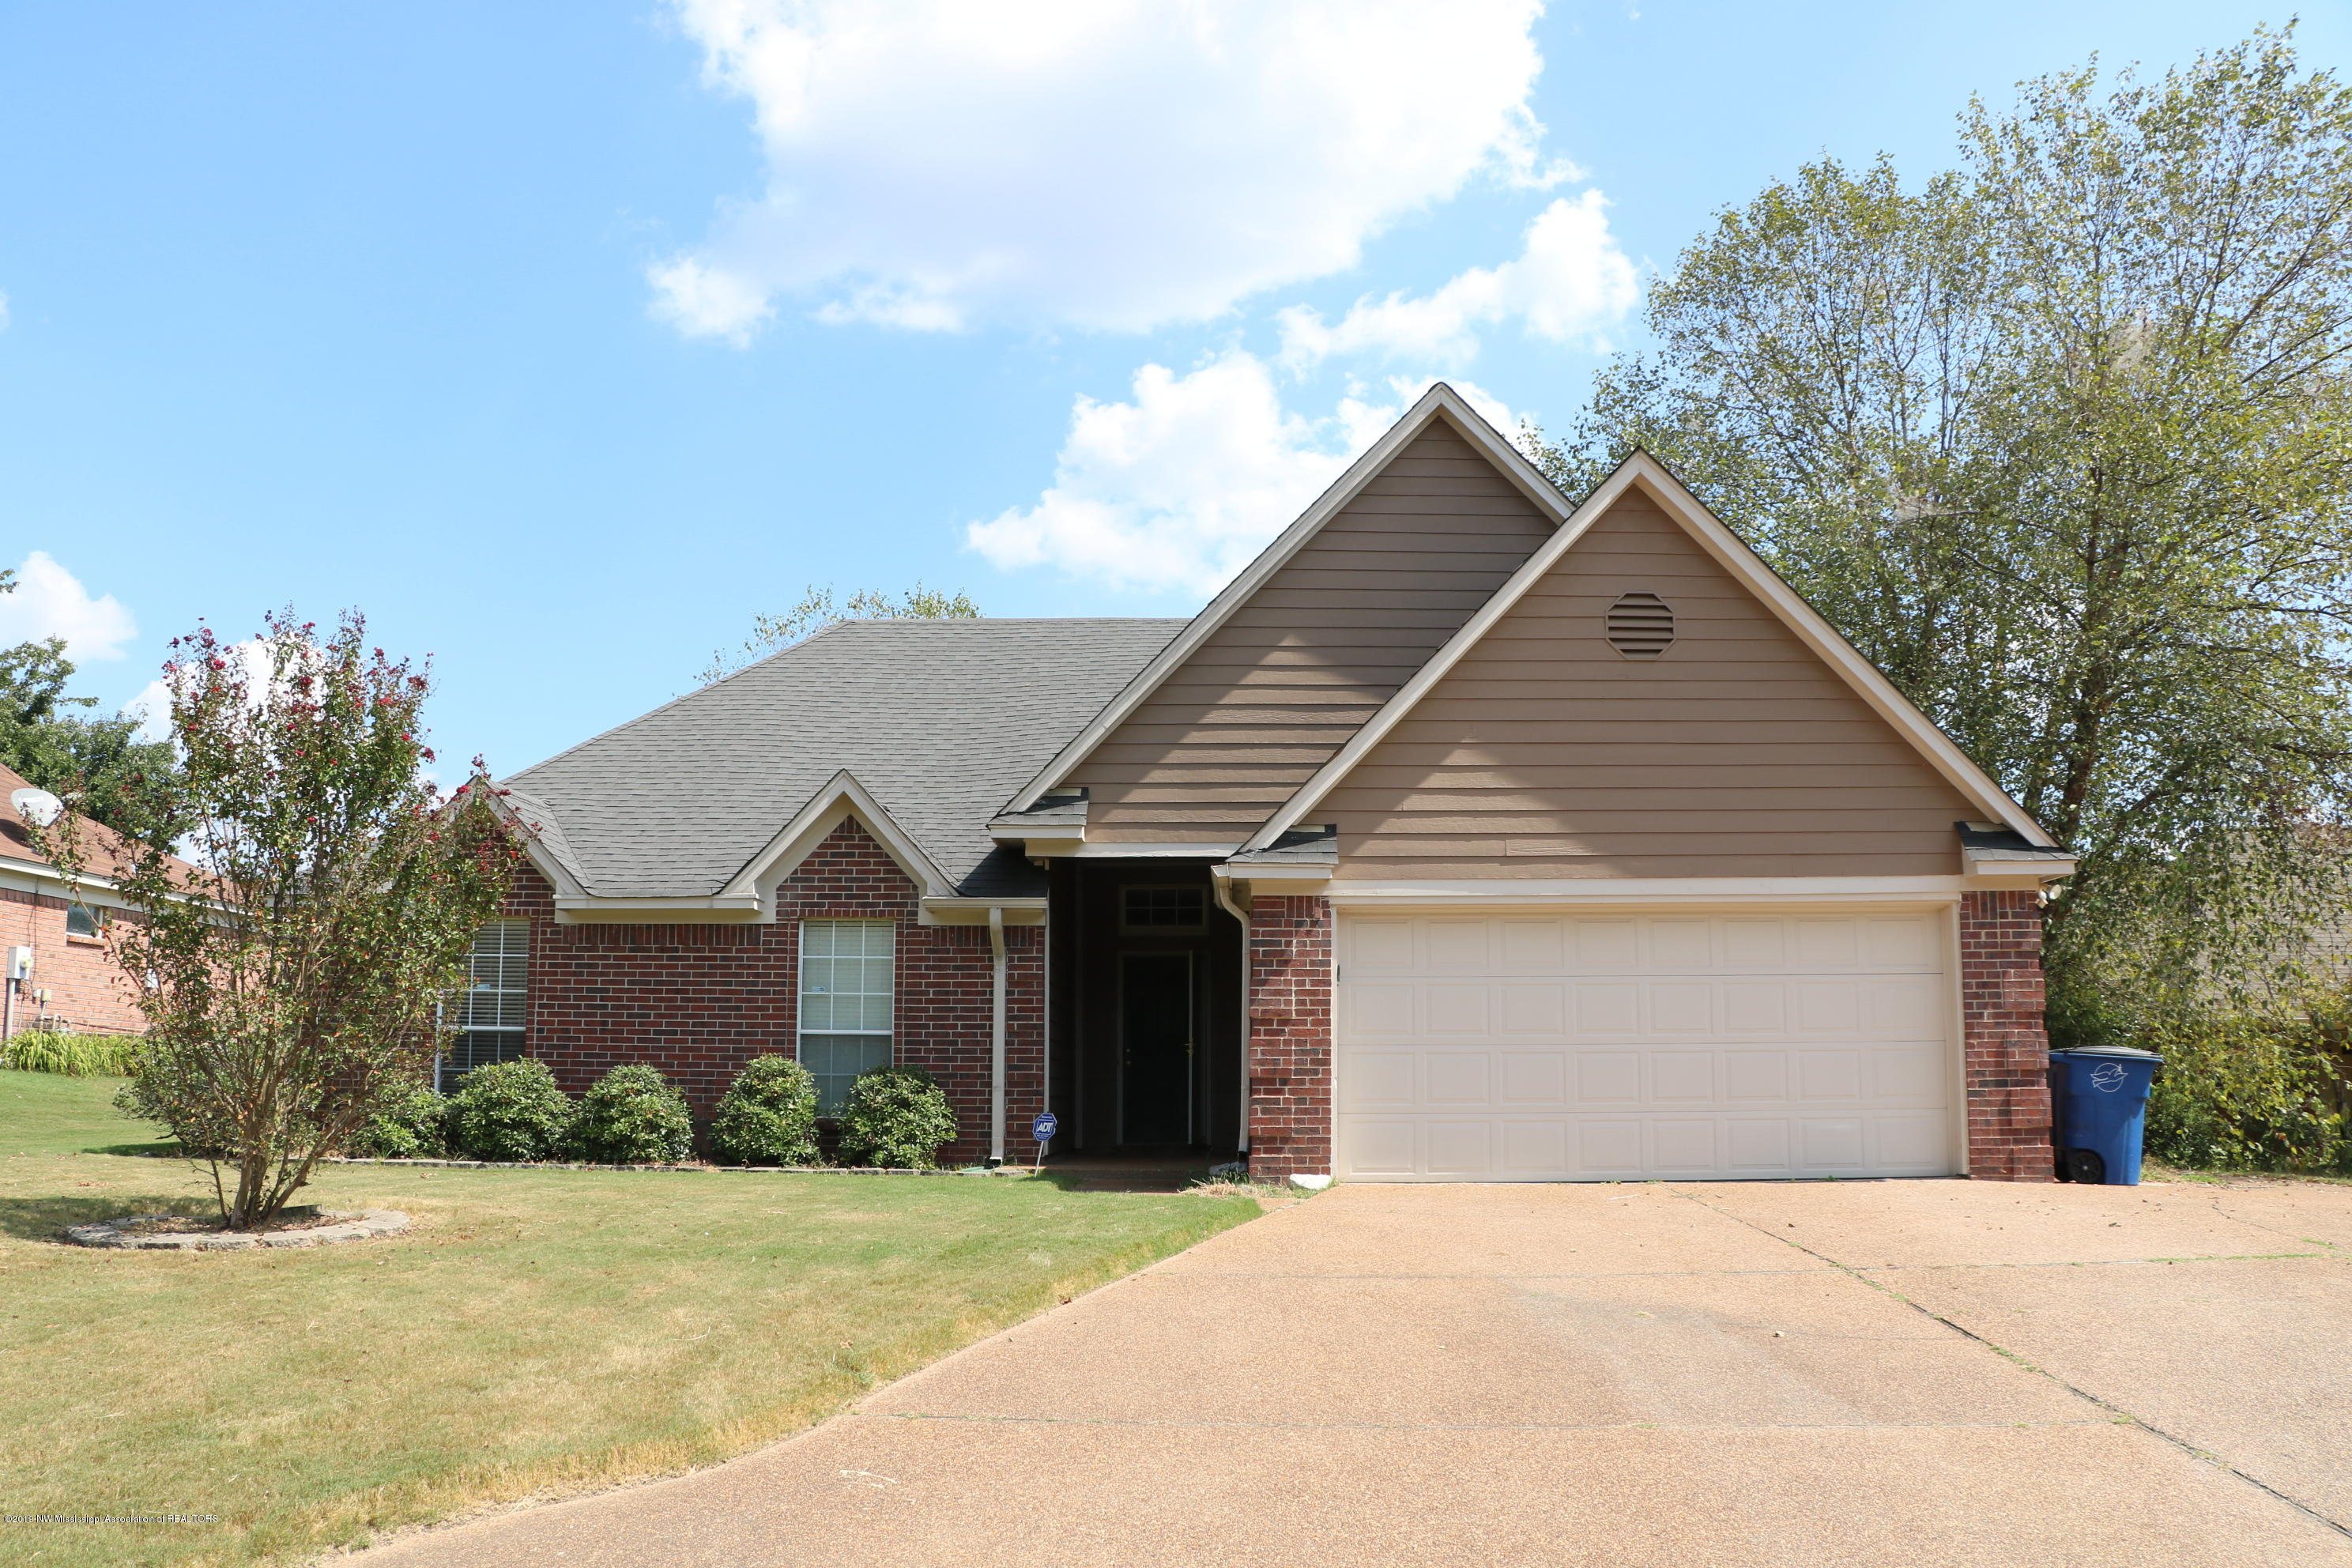 5832 S Shiloah Cove, Olive Branch in DeSoto County, MS 38654 Home for Sale